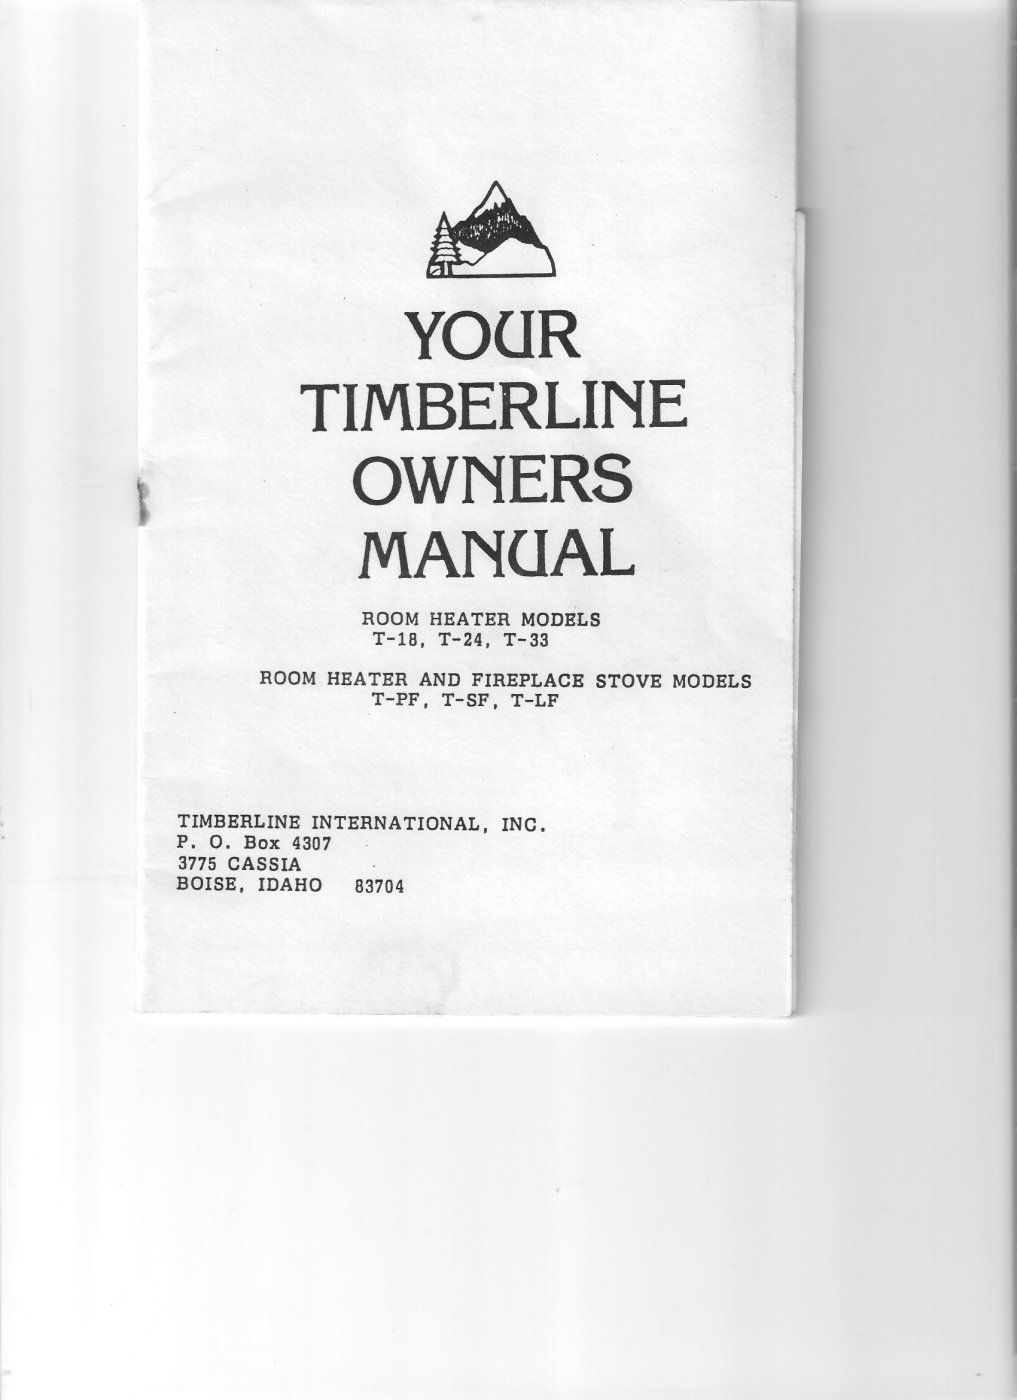 Timberline Manual 014.jpg ... - Timberline Wood Stove Hearth.com Forums Home